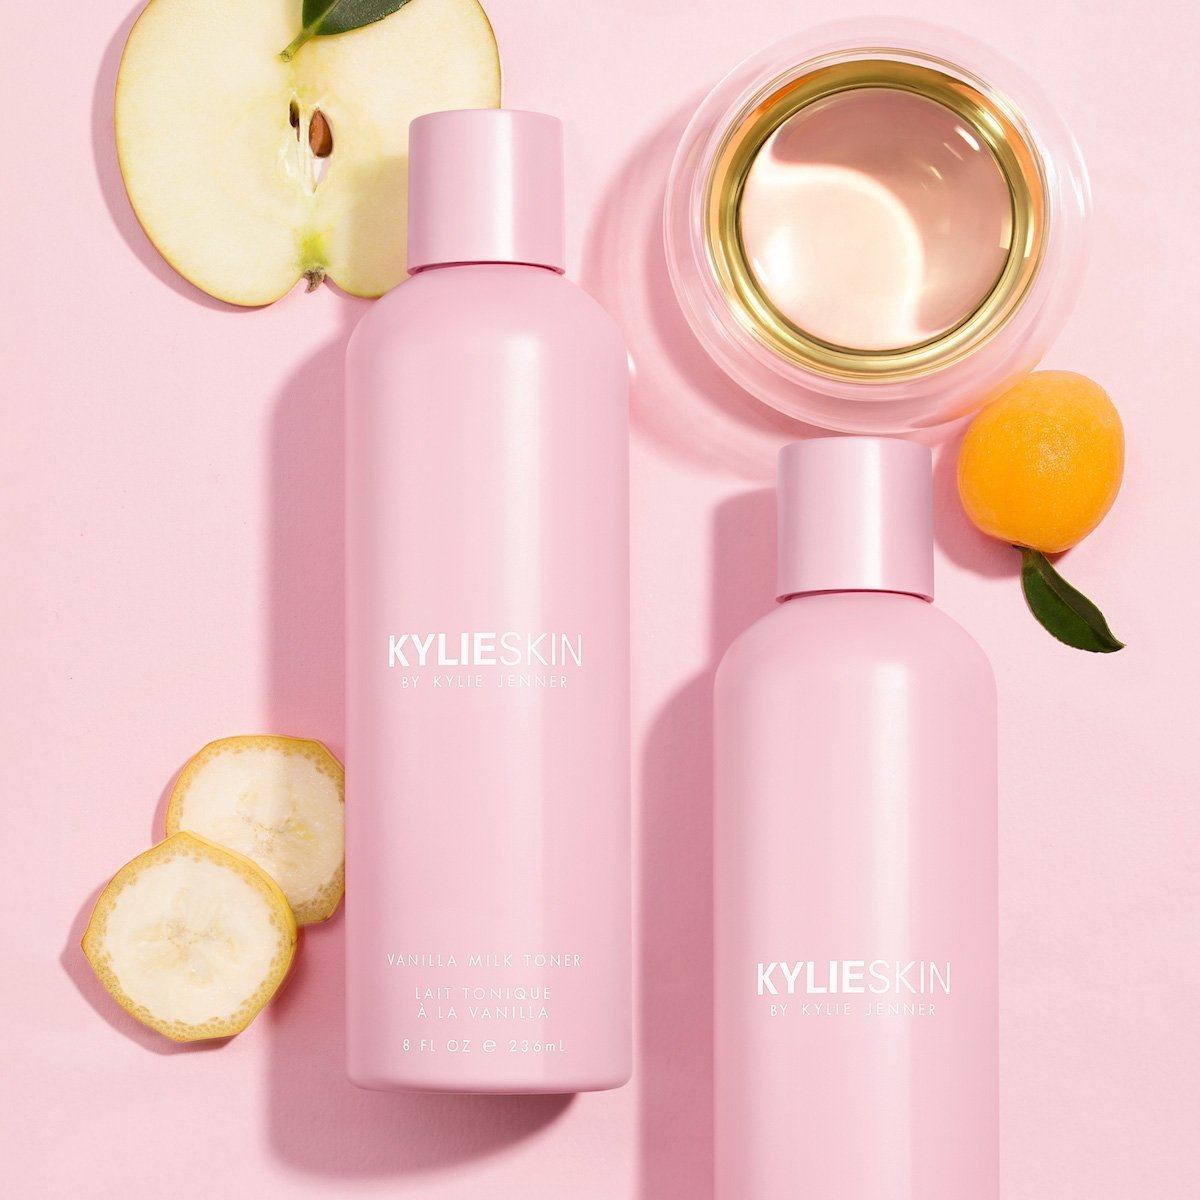 Kylie Skin Vanilla Milk Toner with apple, oil and apricot ingredients